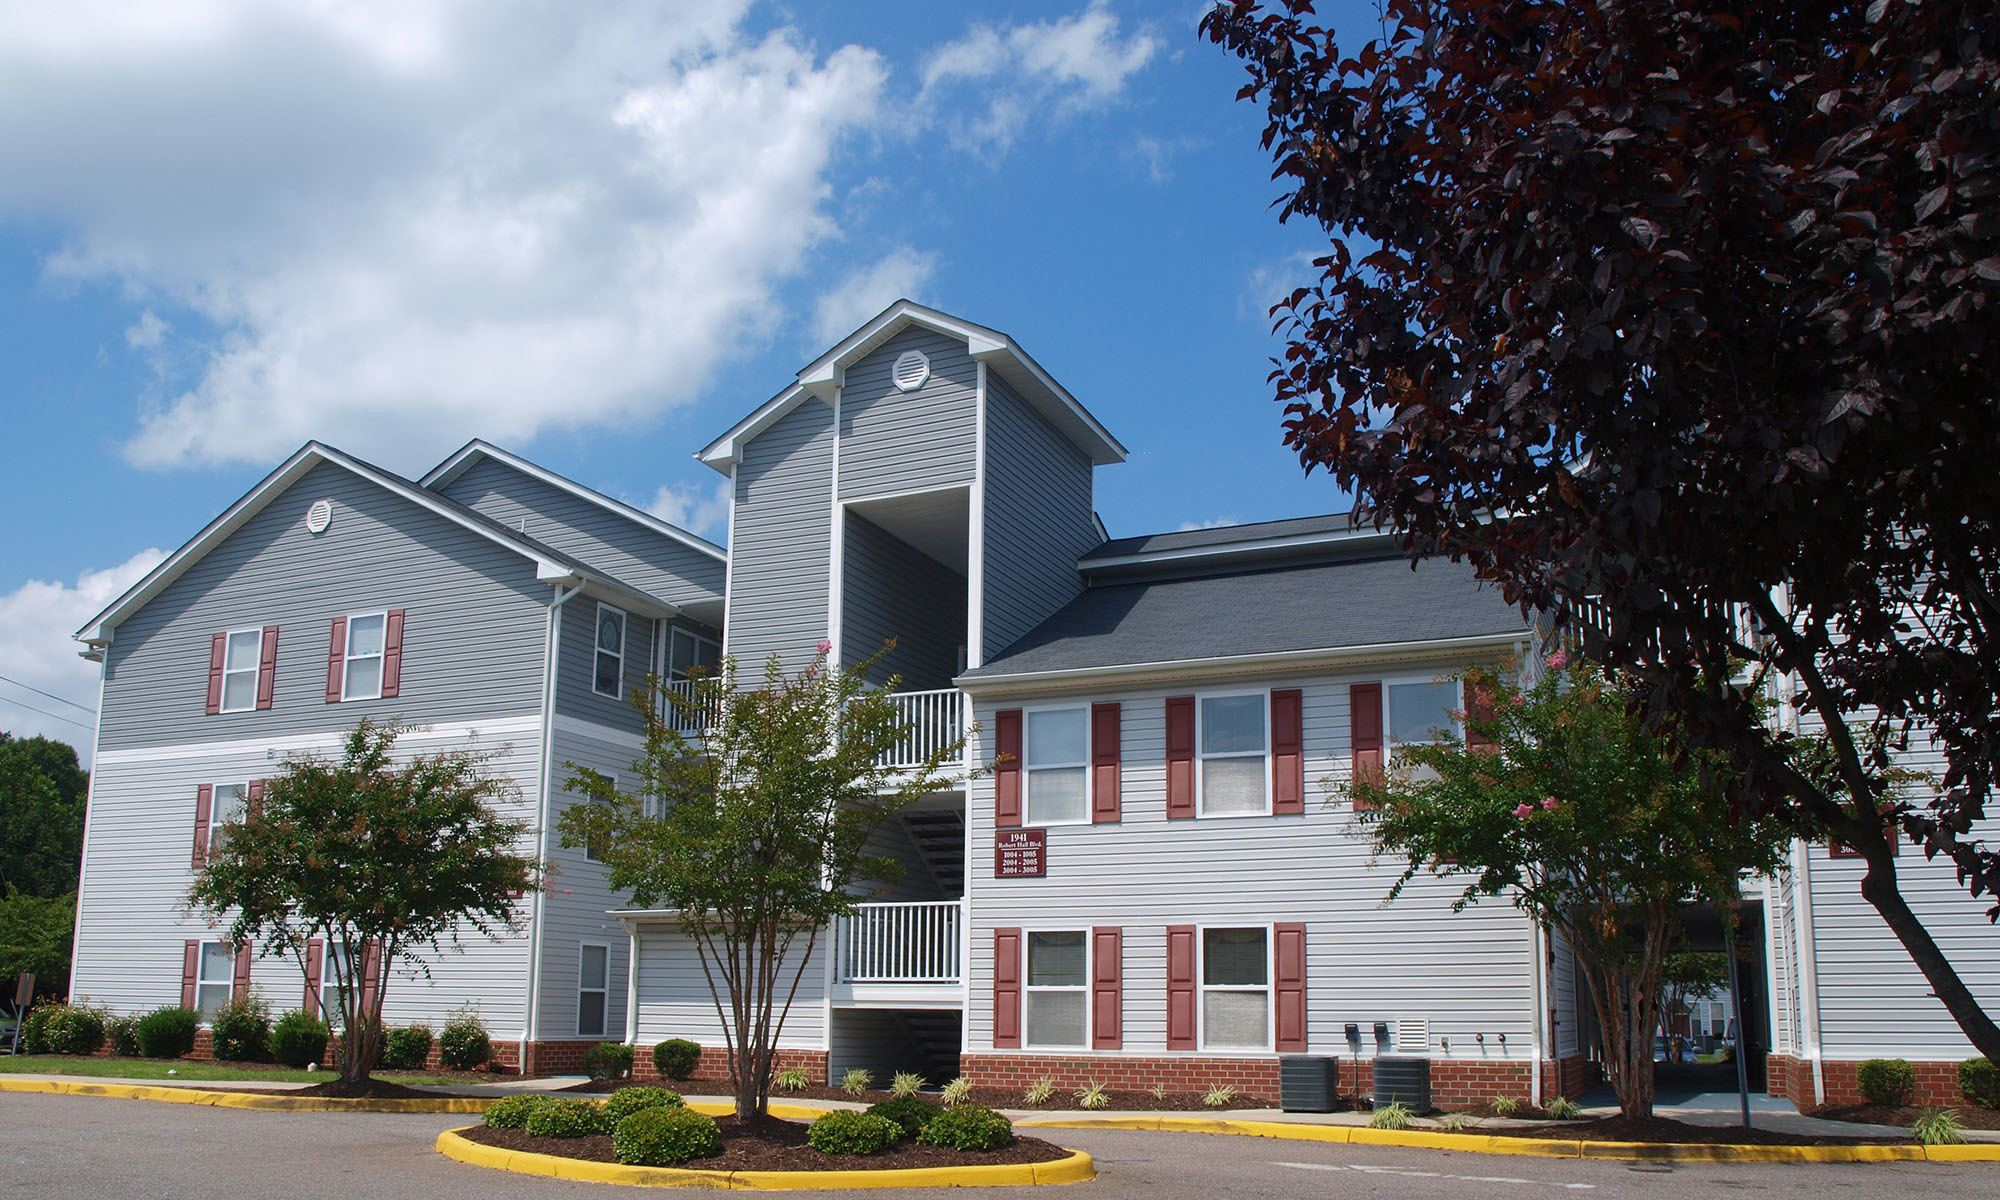 South norfolk chesapeake va senior apartments for rent chesapeake crossing for 3 bedroom apartments in chesapeake va